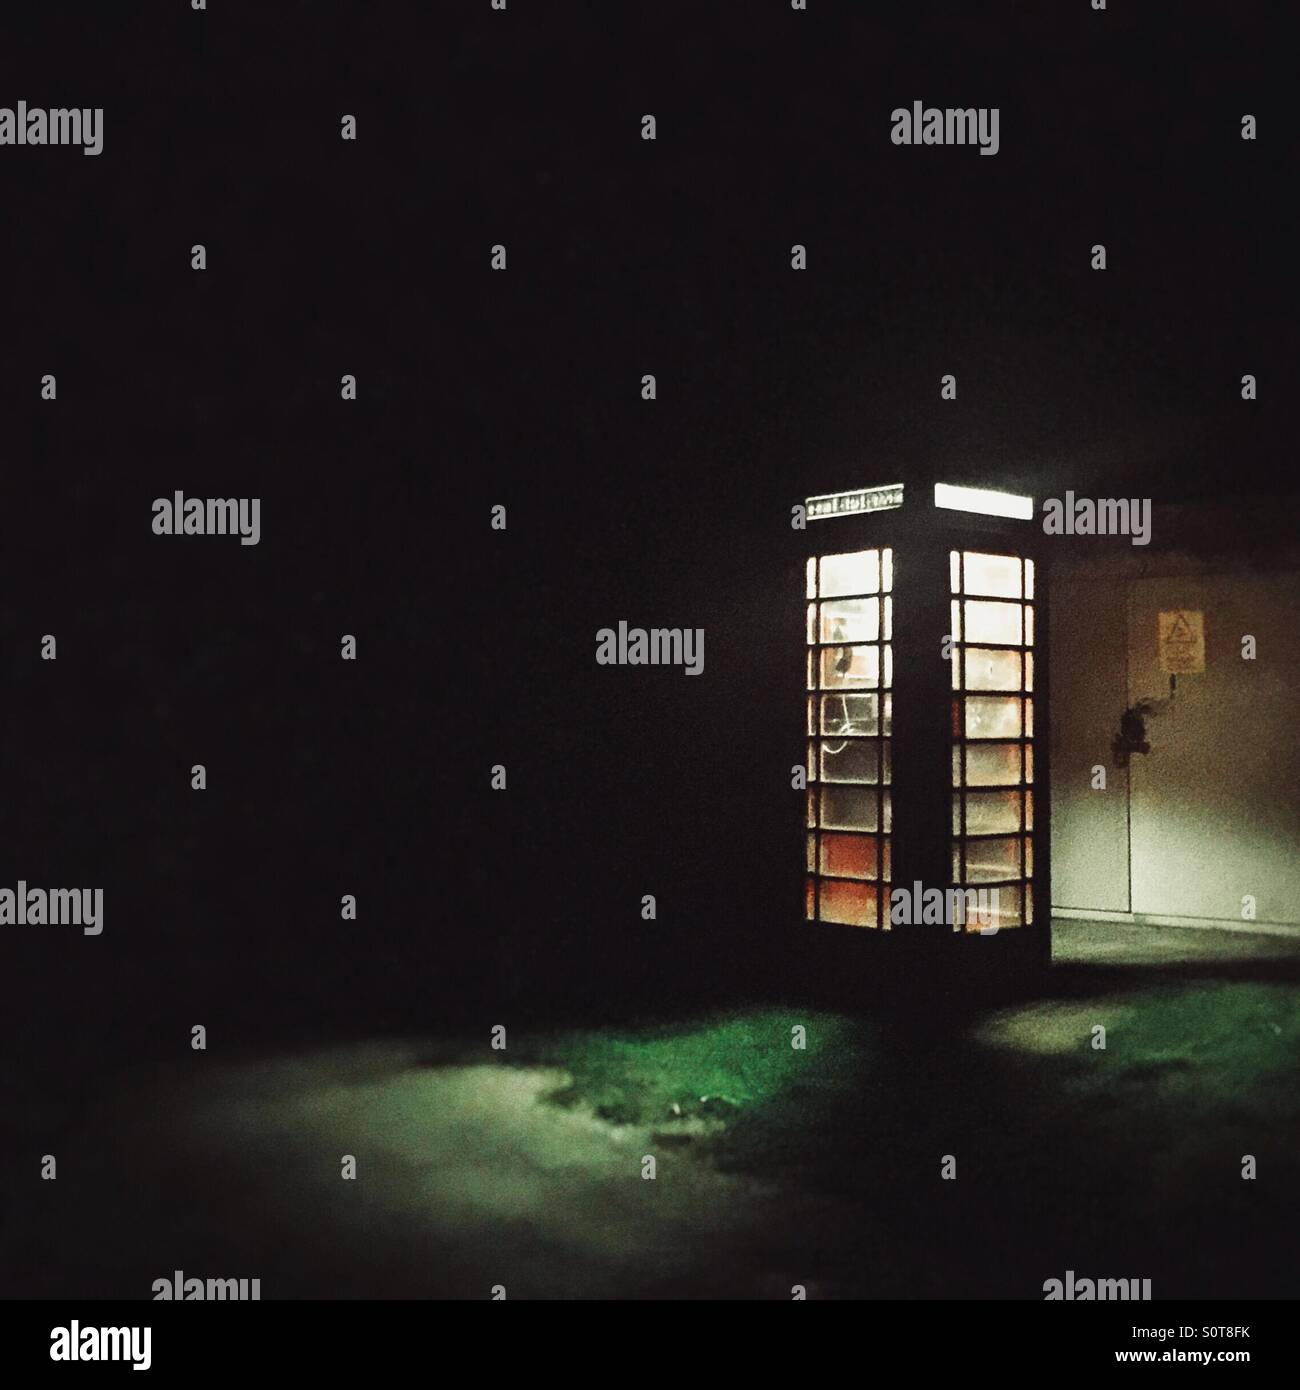 Telephone box at night with light spilling out - Stock Image